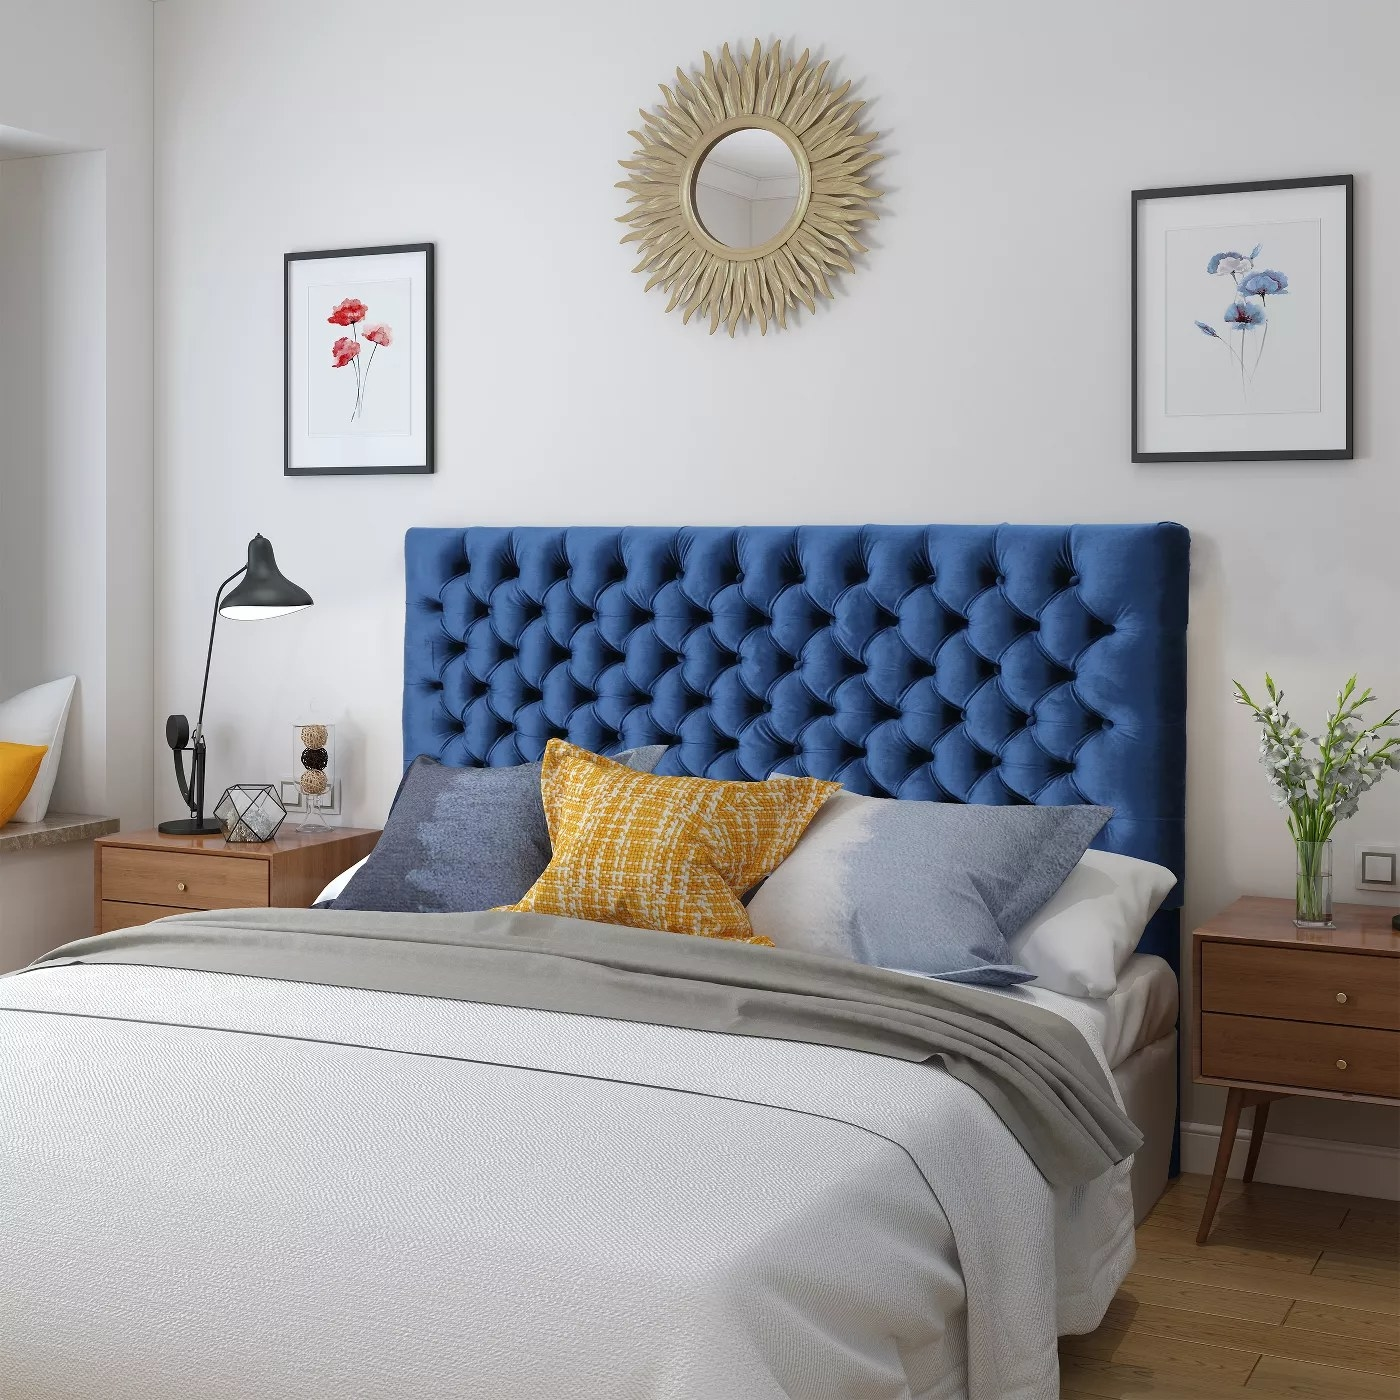 The tufted headboard in blue